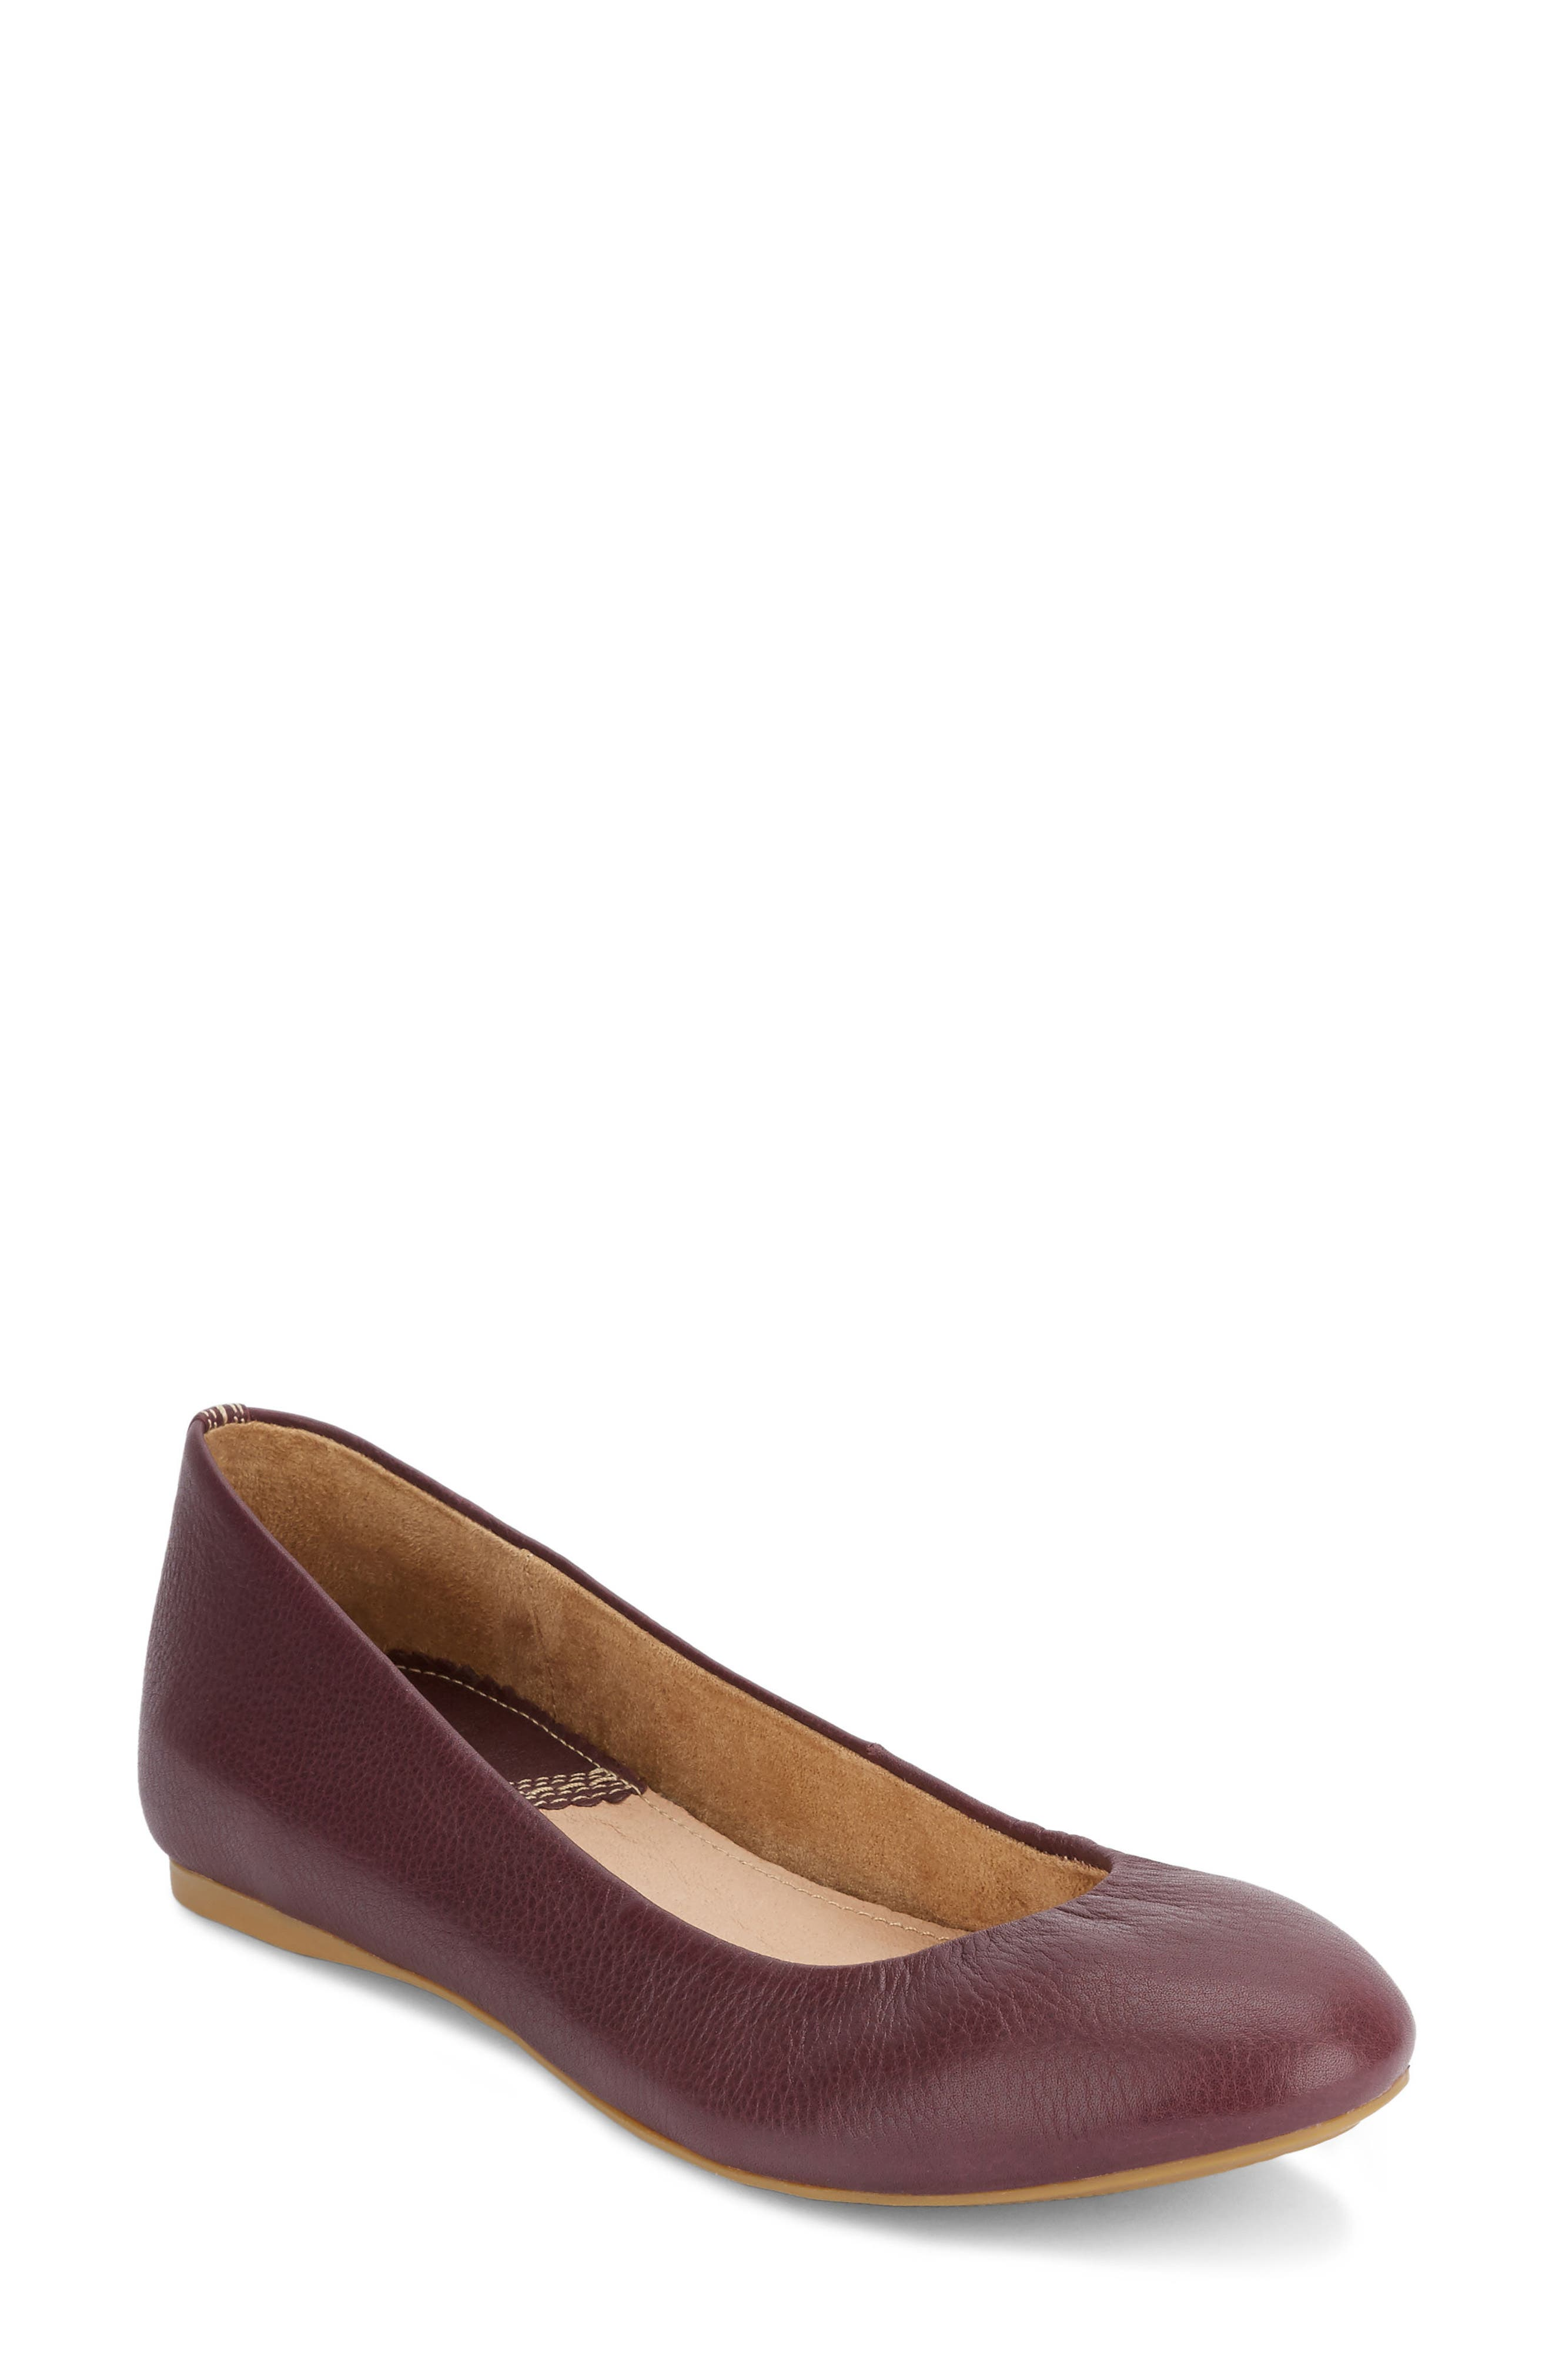 Felicity Ballet Flat,                         Main,                         color, Eggplant Leather